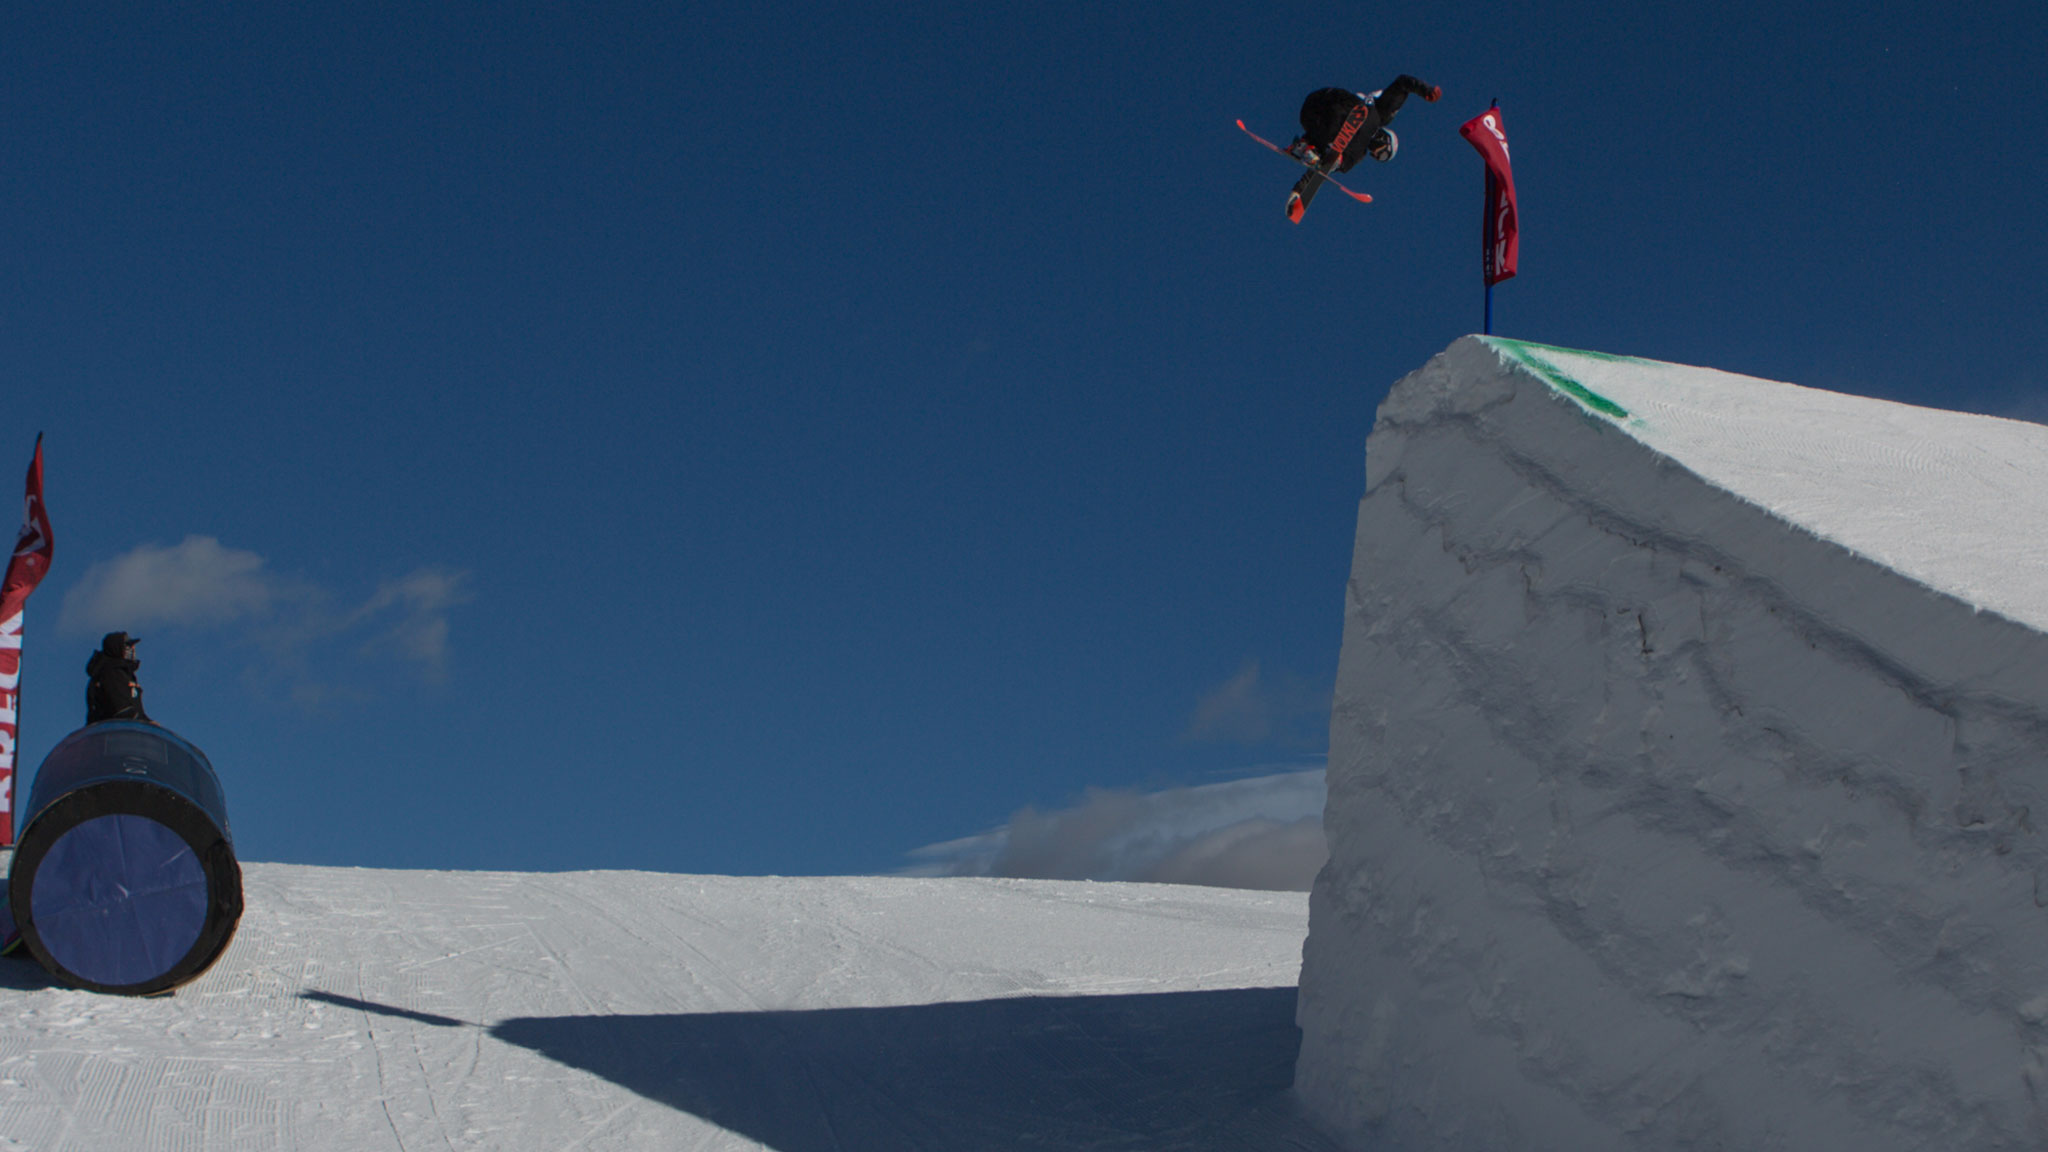 Nick Goepper, Slopestyle Winner